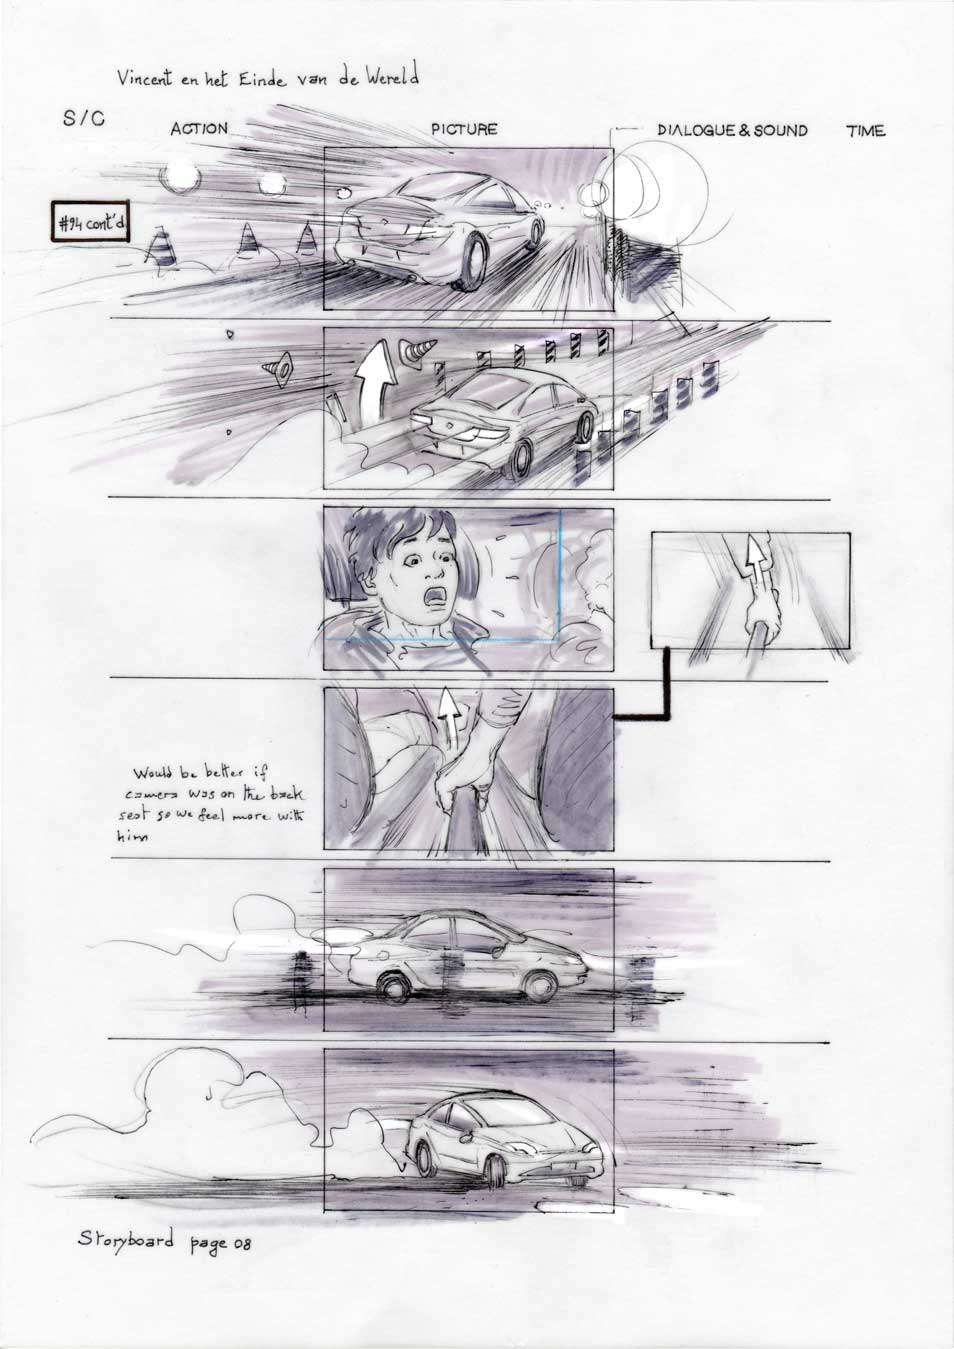 Vincent and the End of the World storyboard 08